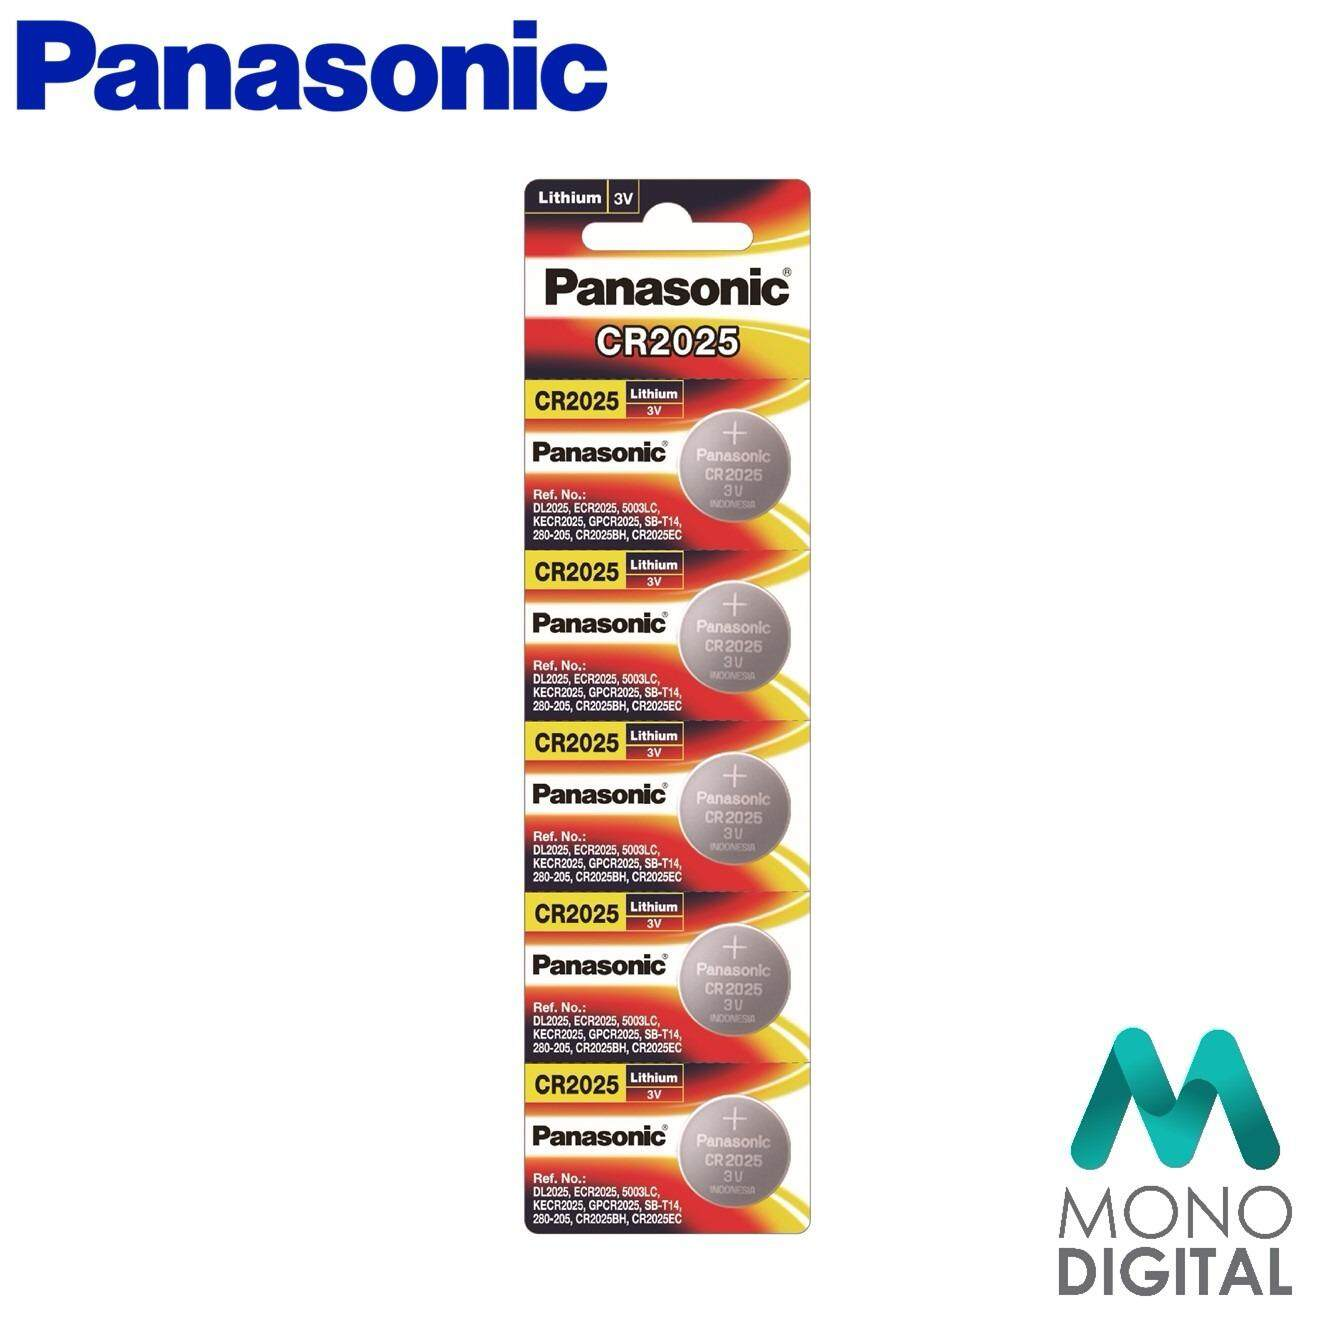 Panasonic Lithium Coin CR2025 5cells Pack Battery (Panasonic Malaysia)